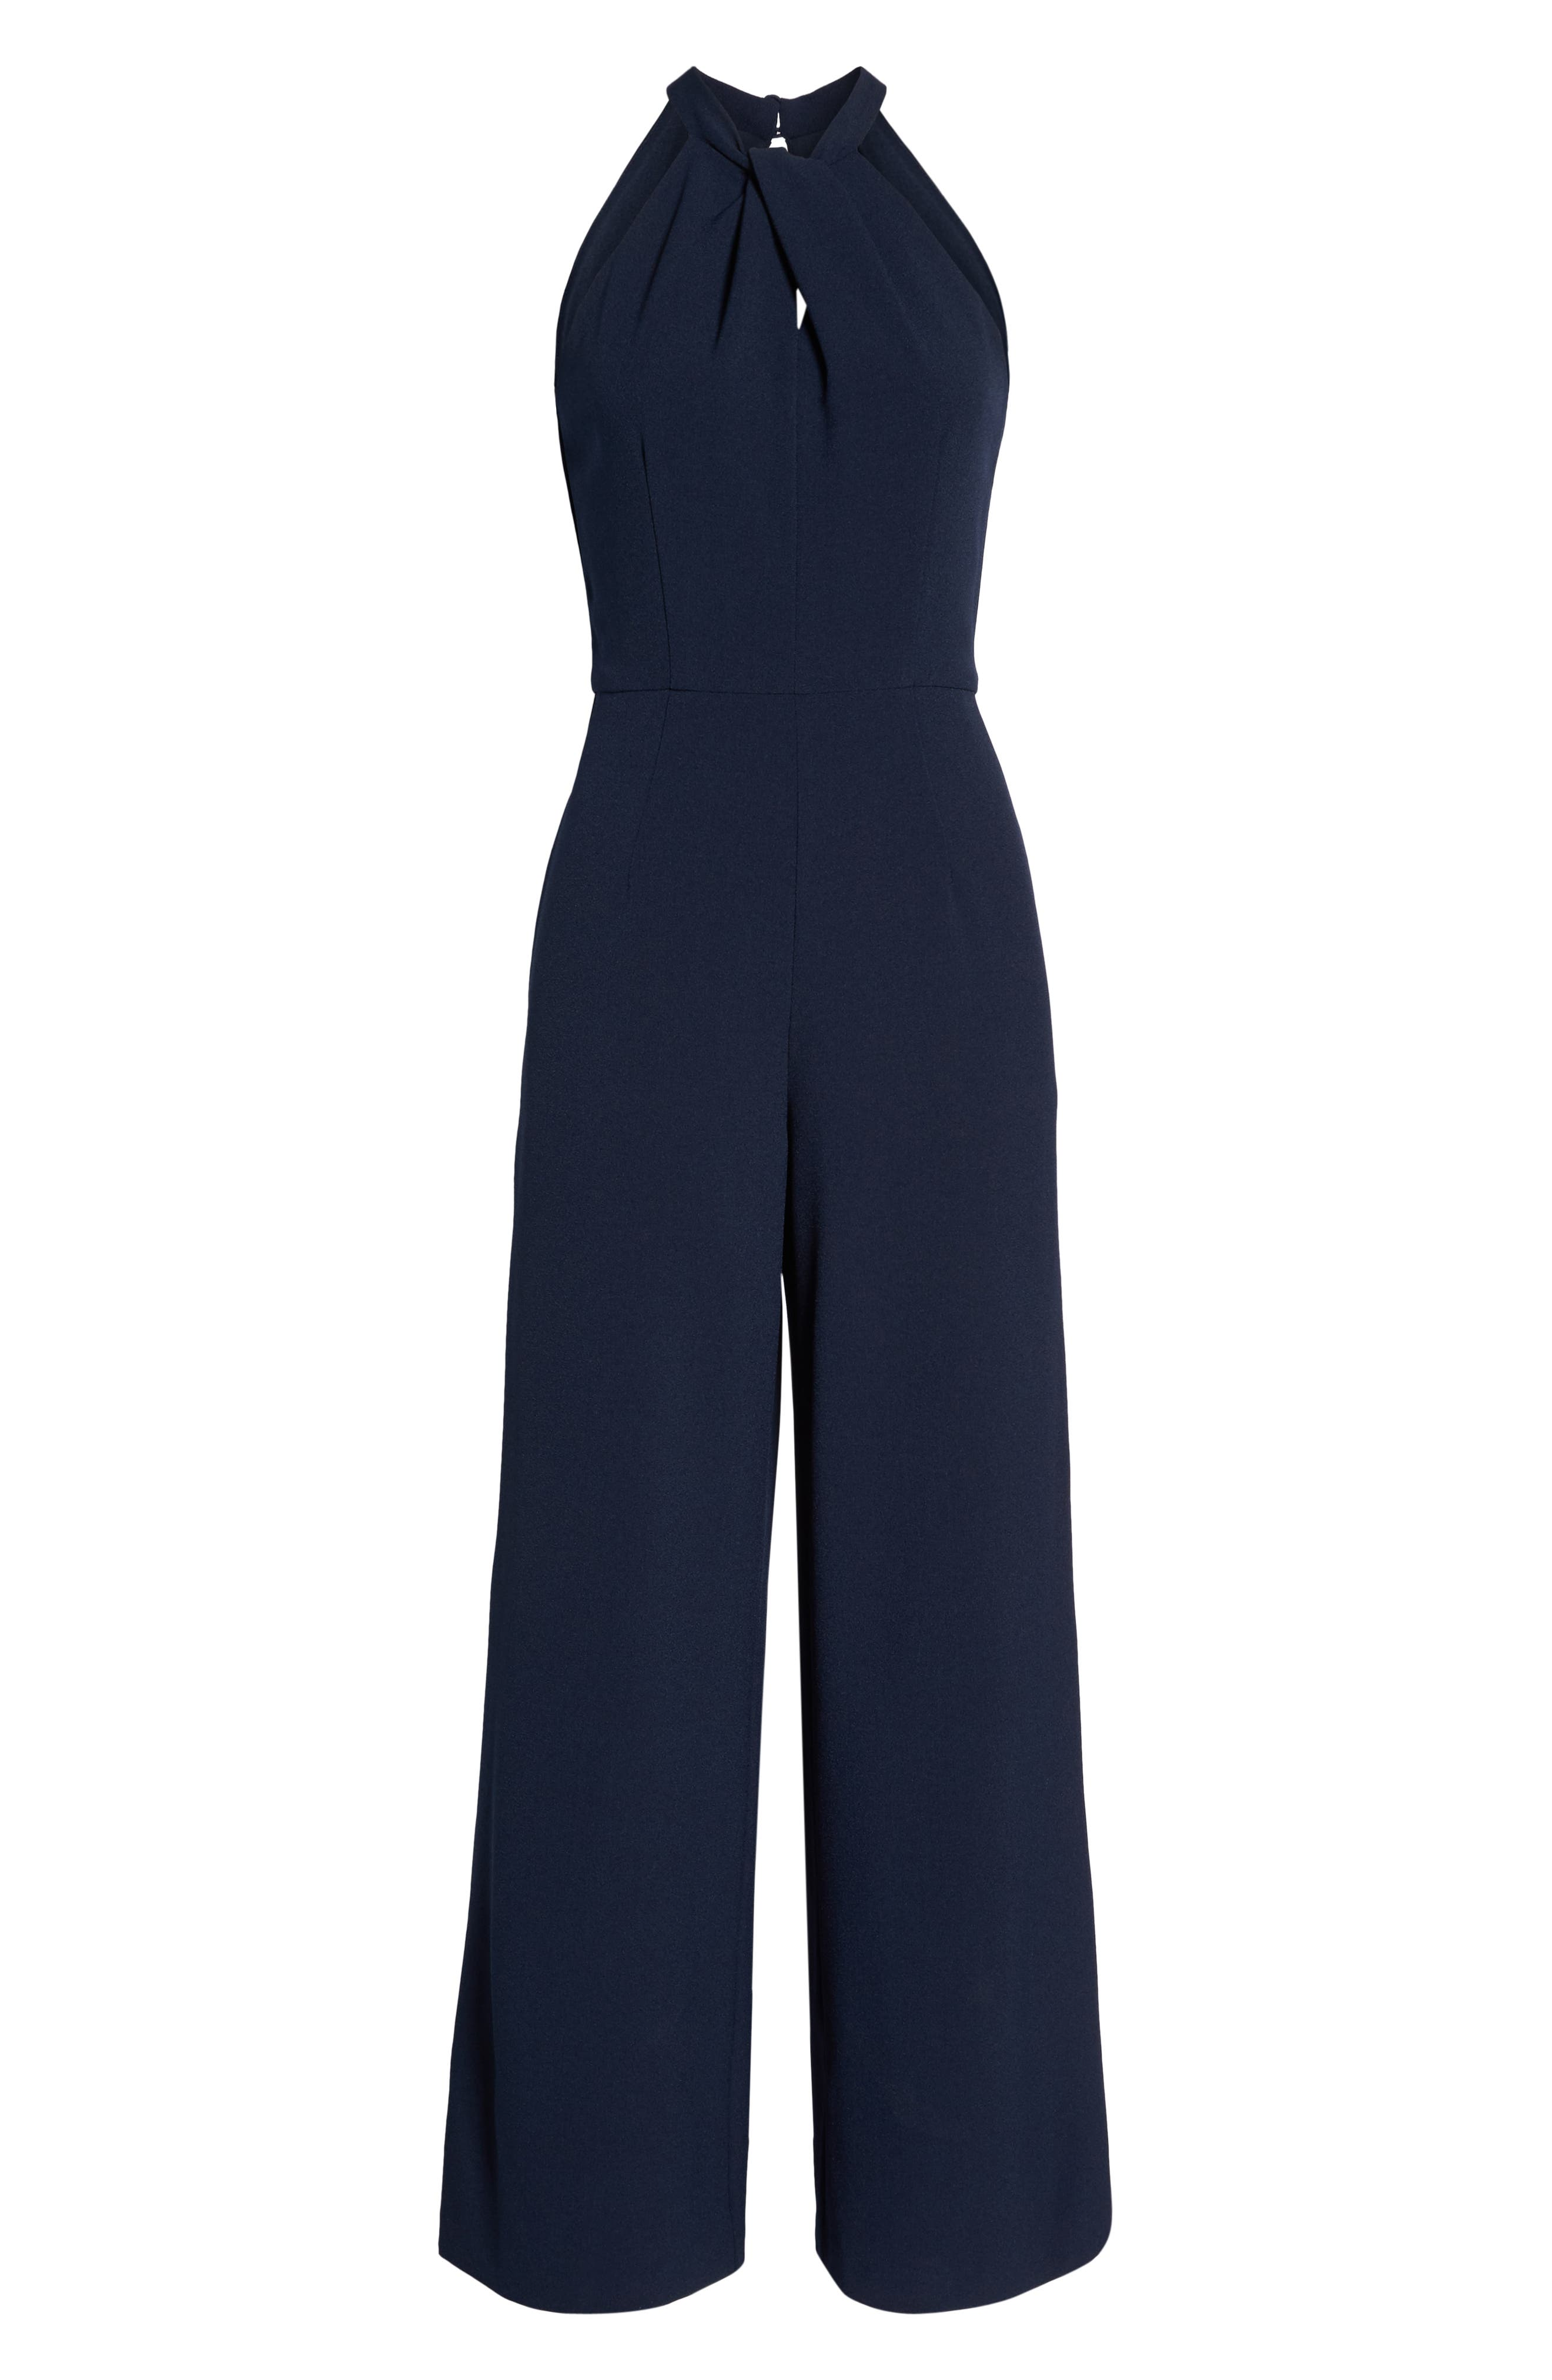 JULIA JORDAN, Halter Wide Leg Jumpsuit, Alternate thumbnail 6, color, NAVY